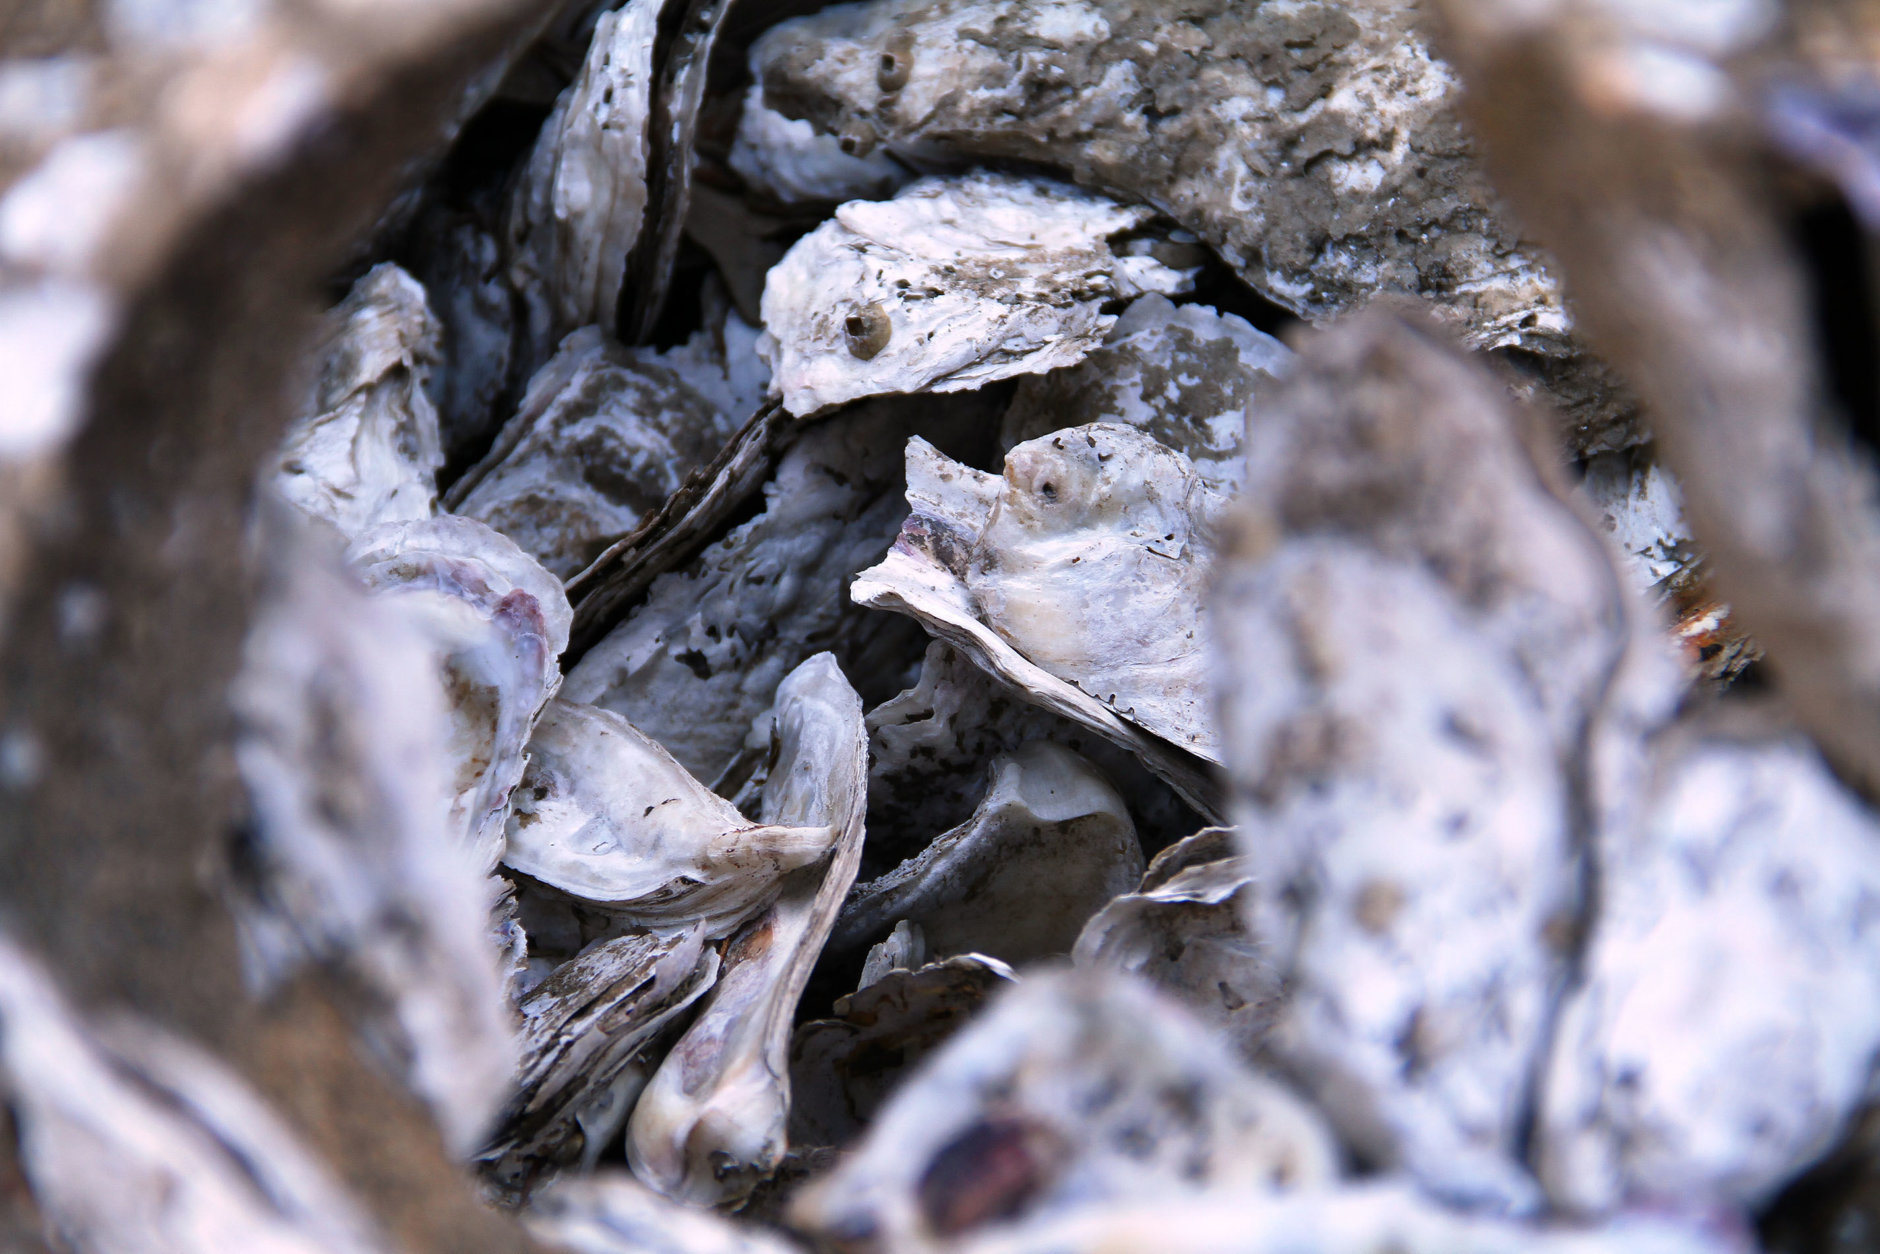 In coming months, harvests of Chesapeake Bay oysters may reflect effects from heavy summer rains. (Courtesy Chesapeake Bay Foundation/Jeanie Free)